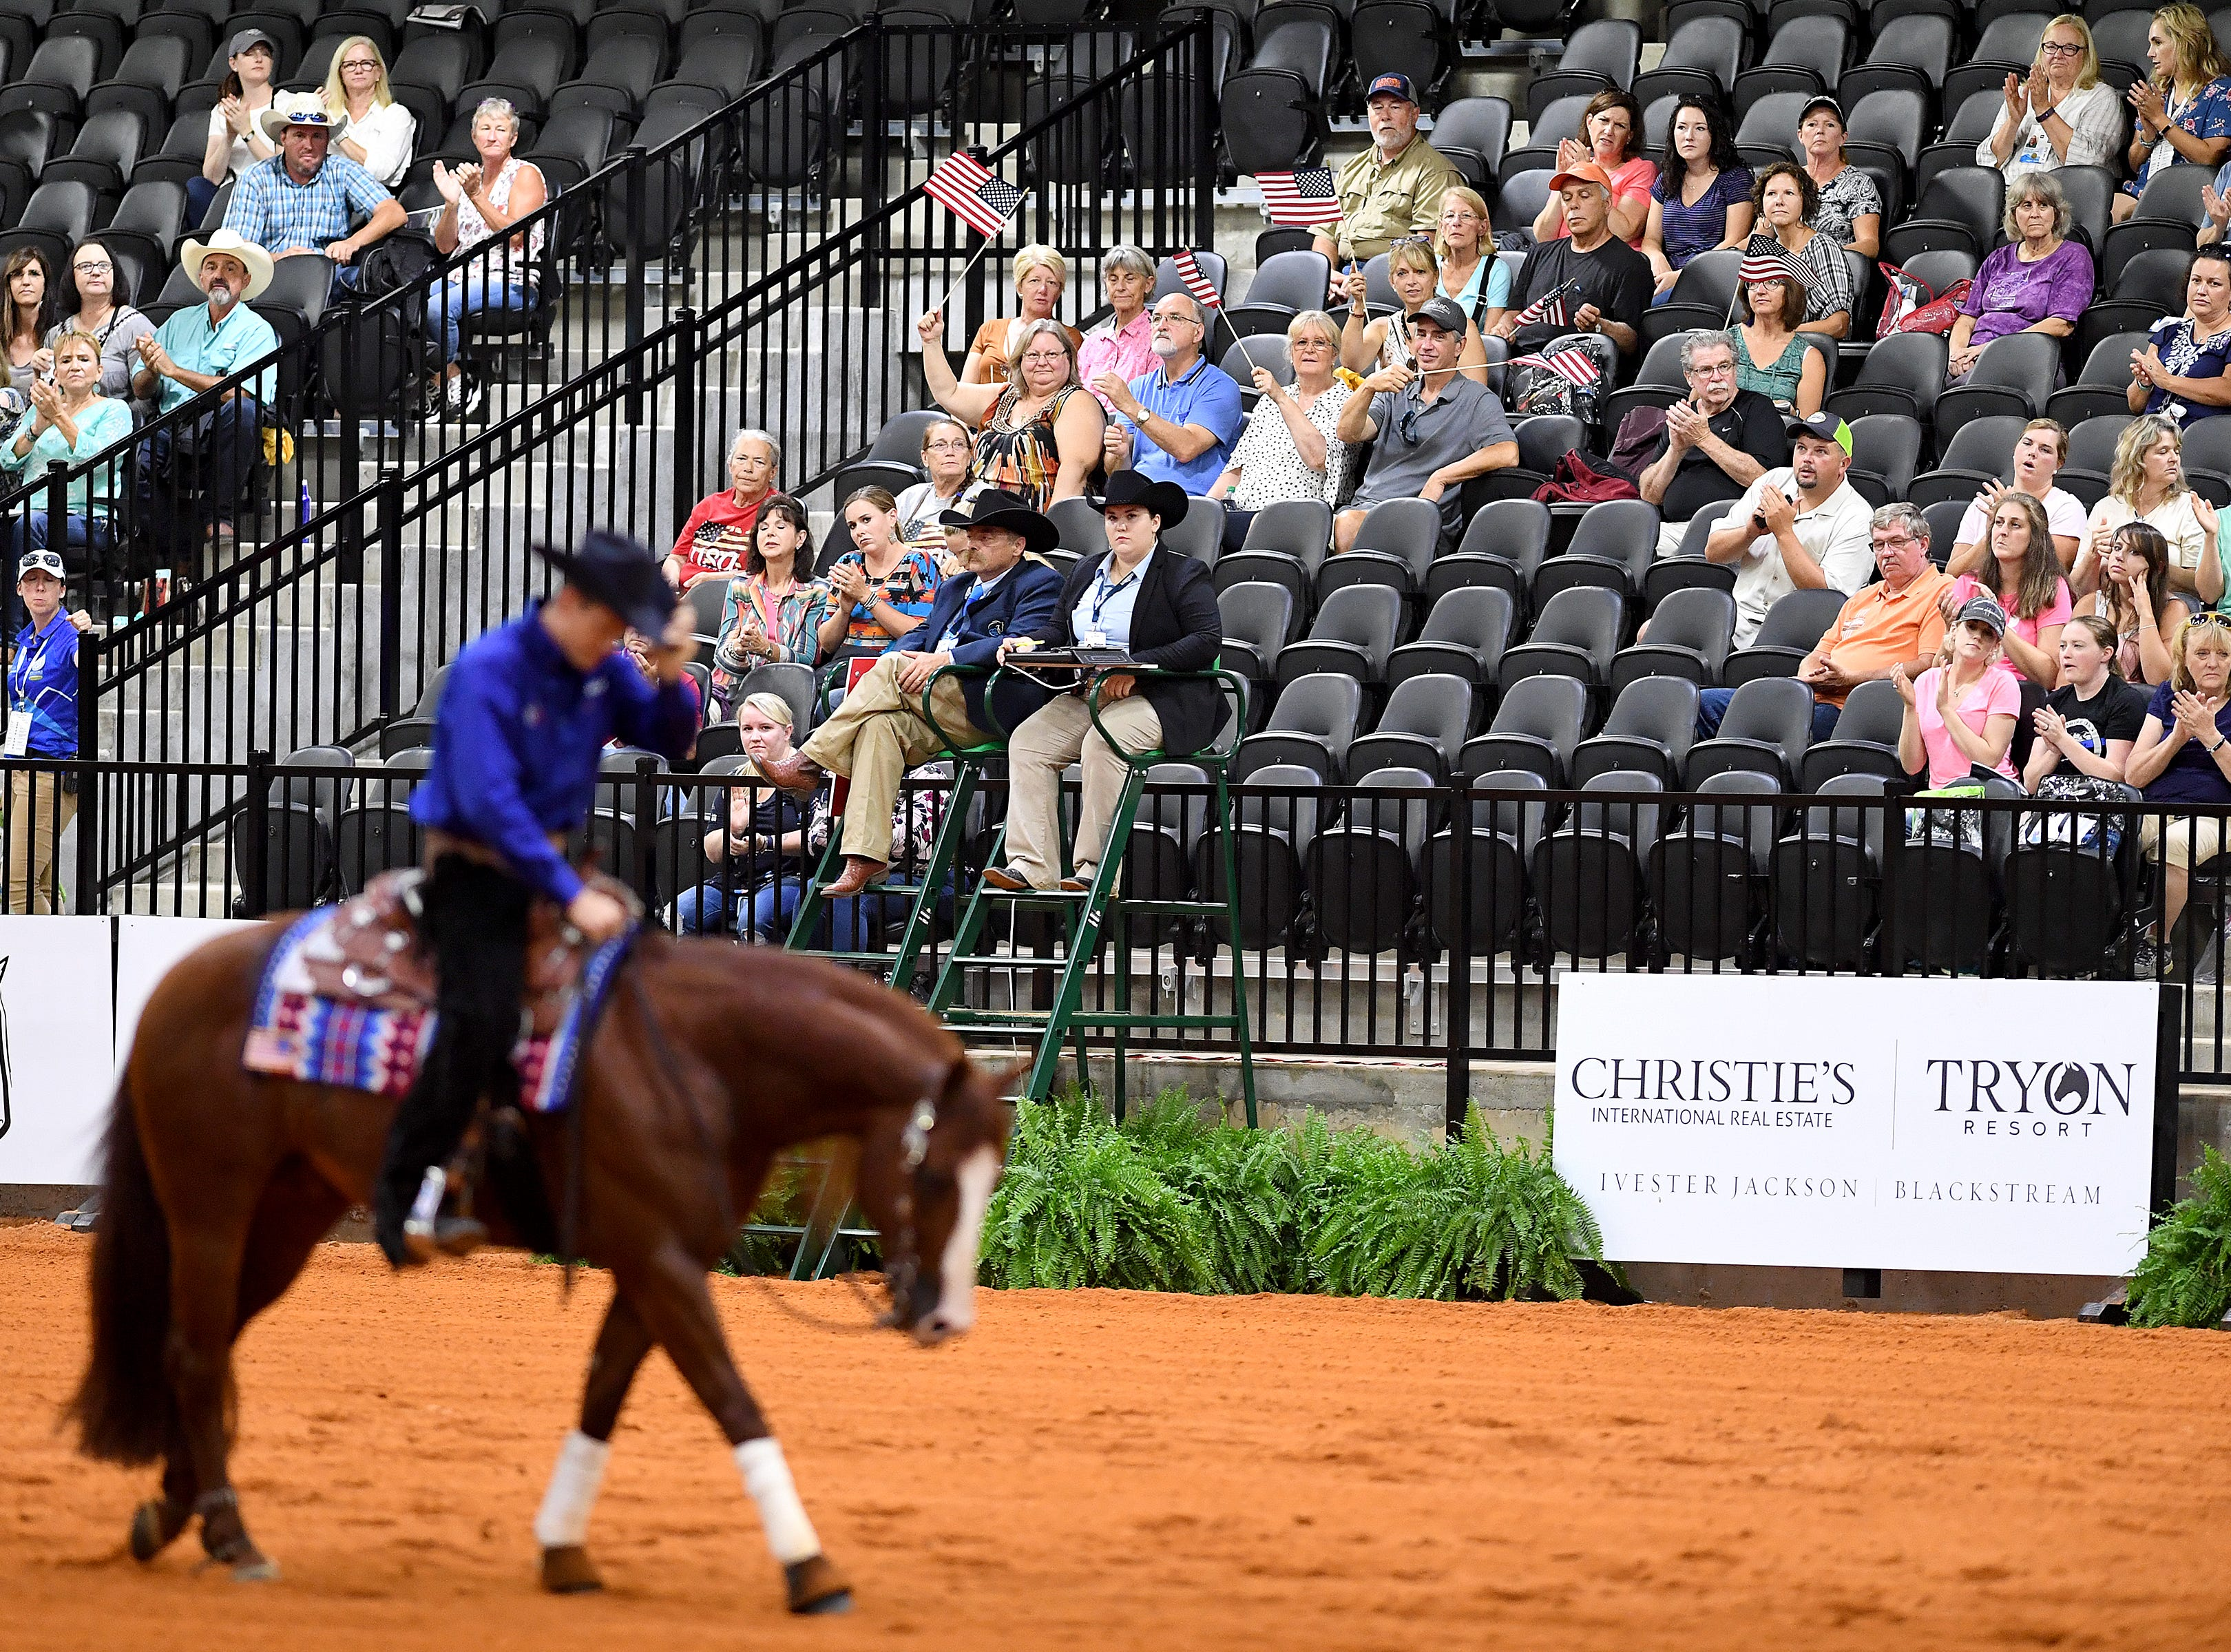 American Gabe Hutchins, on his horse, FM Shine N Tag Chex, tips his hat as the crowd cheers following the reining competition during the FEI World Equestrian Games at the Tryon International Equestrian Center on Sept. 12, 2018.